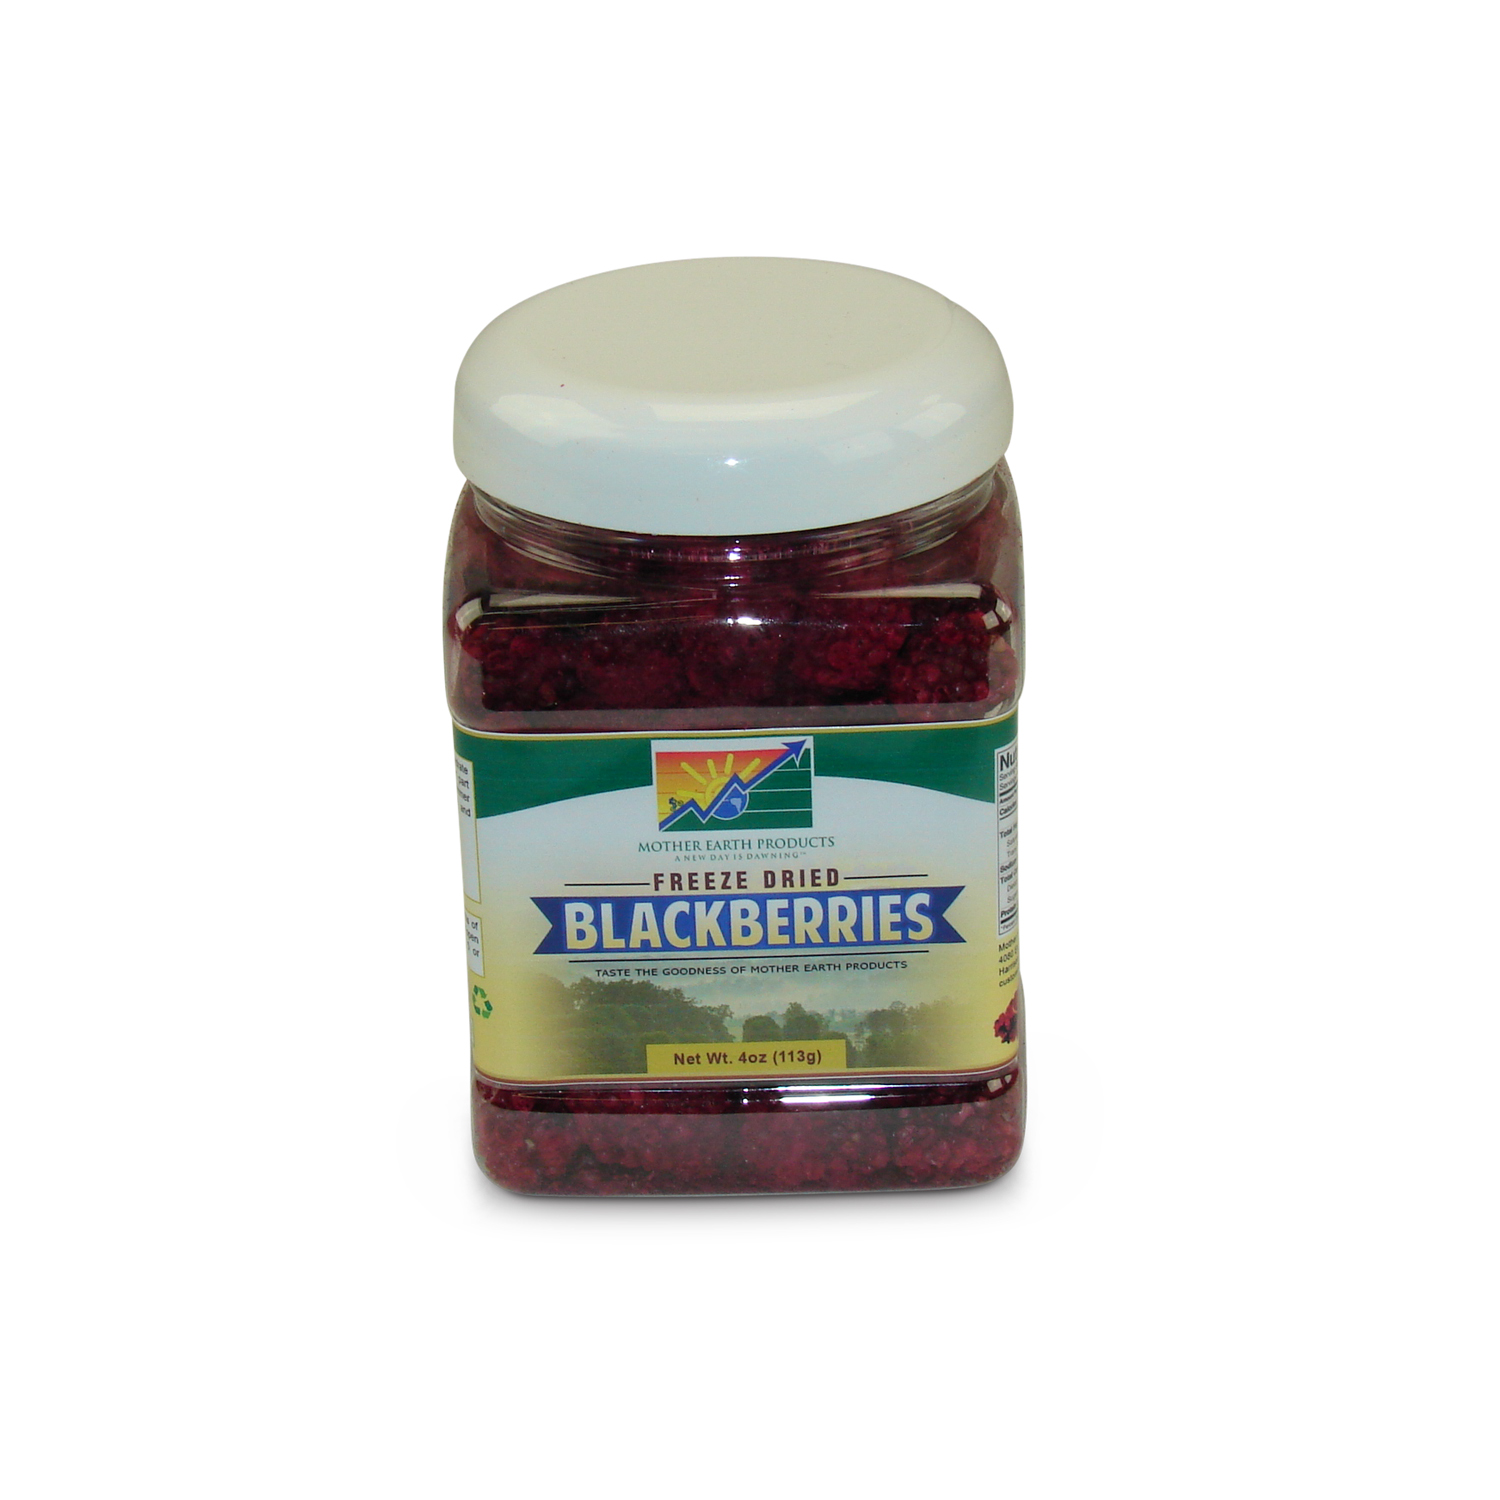 Mother Earth Products Freeze Dried Blackberries, jar by Mother Earth Products